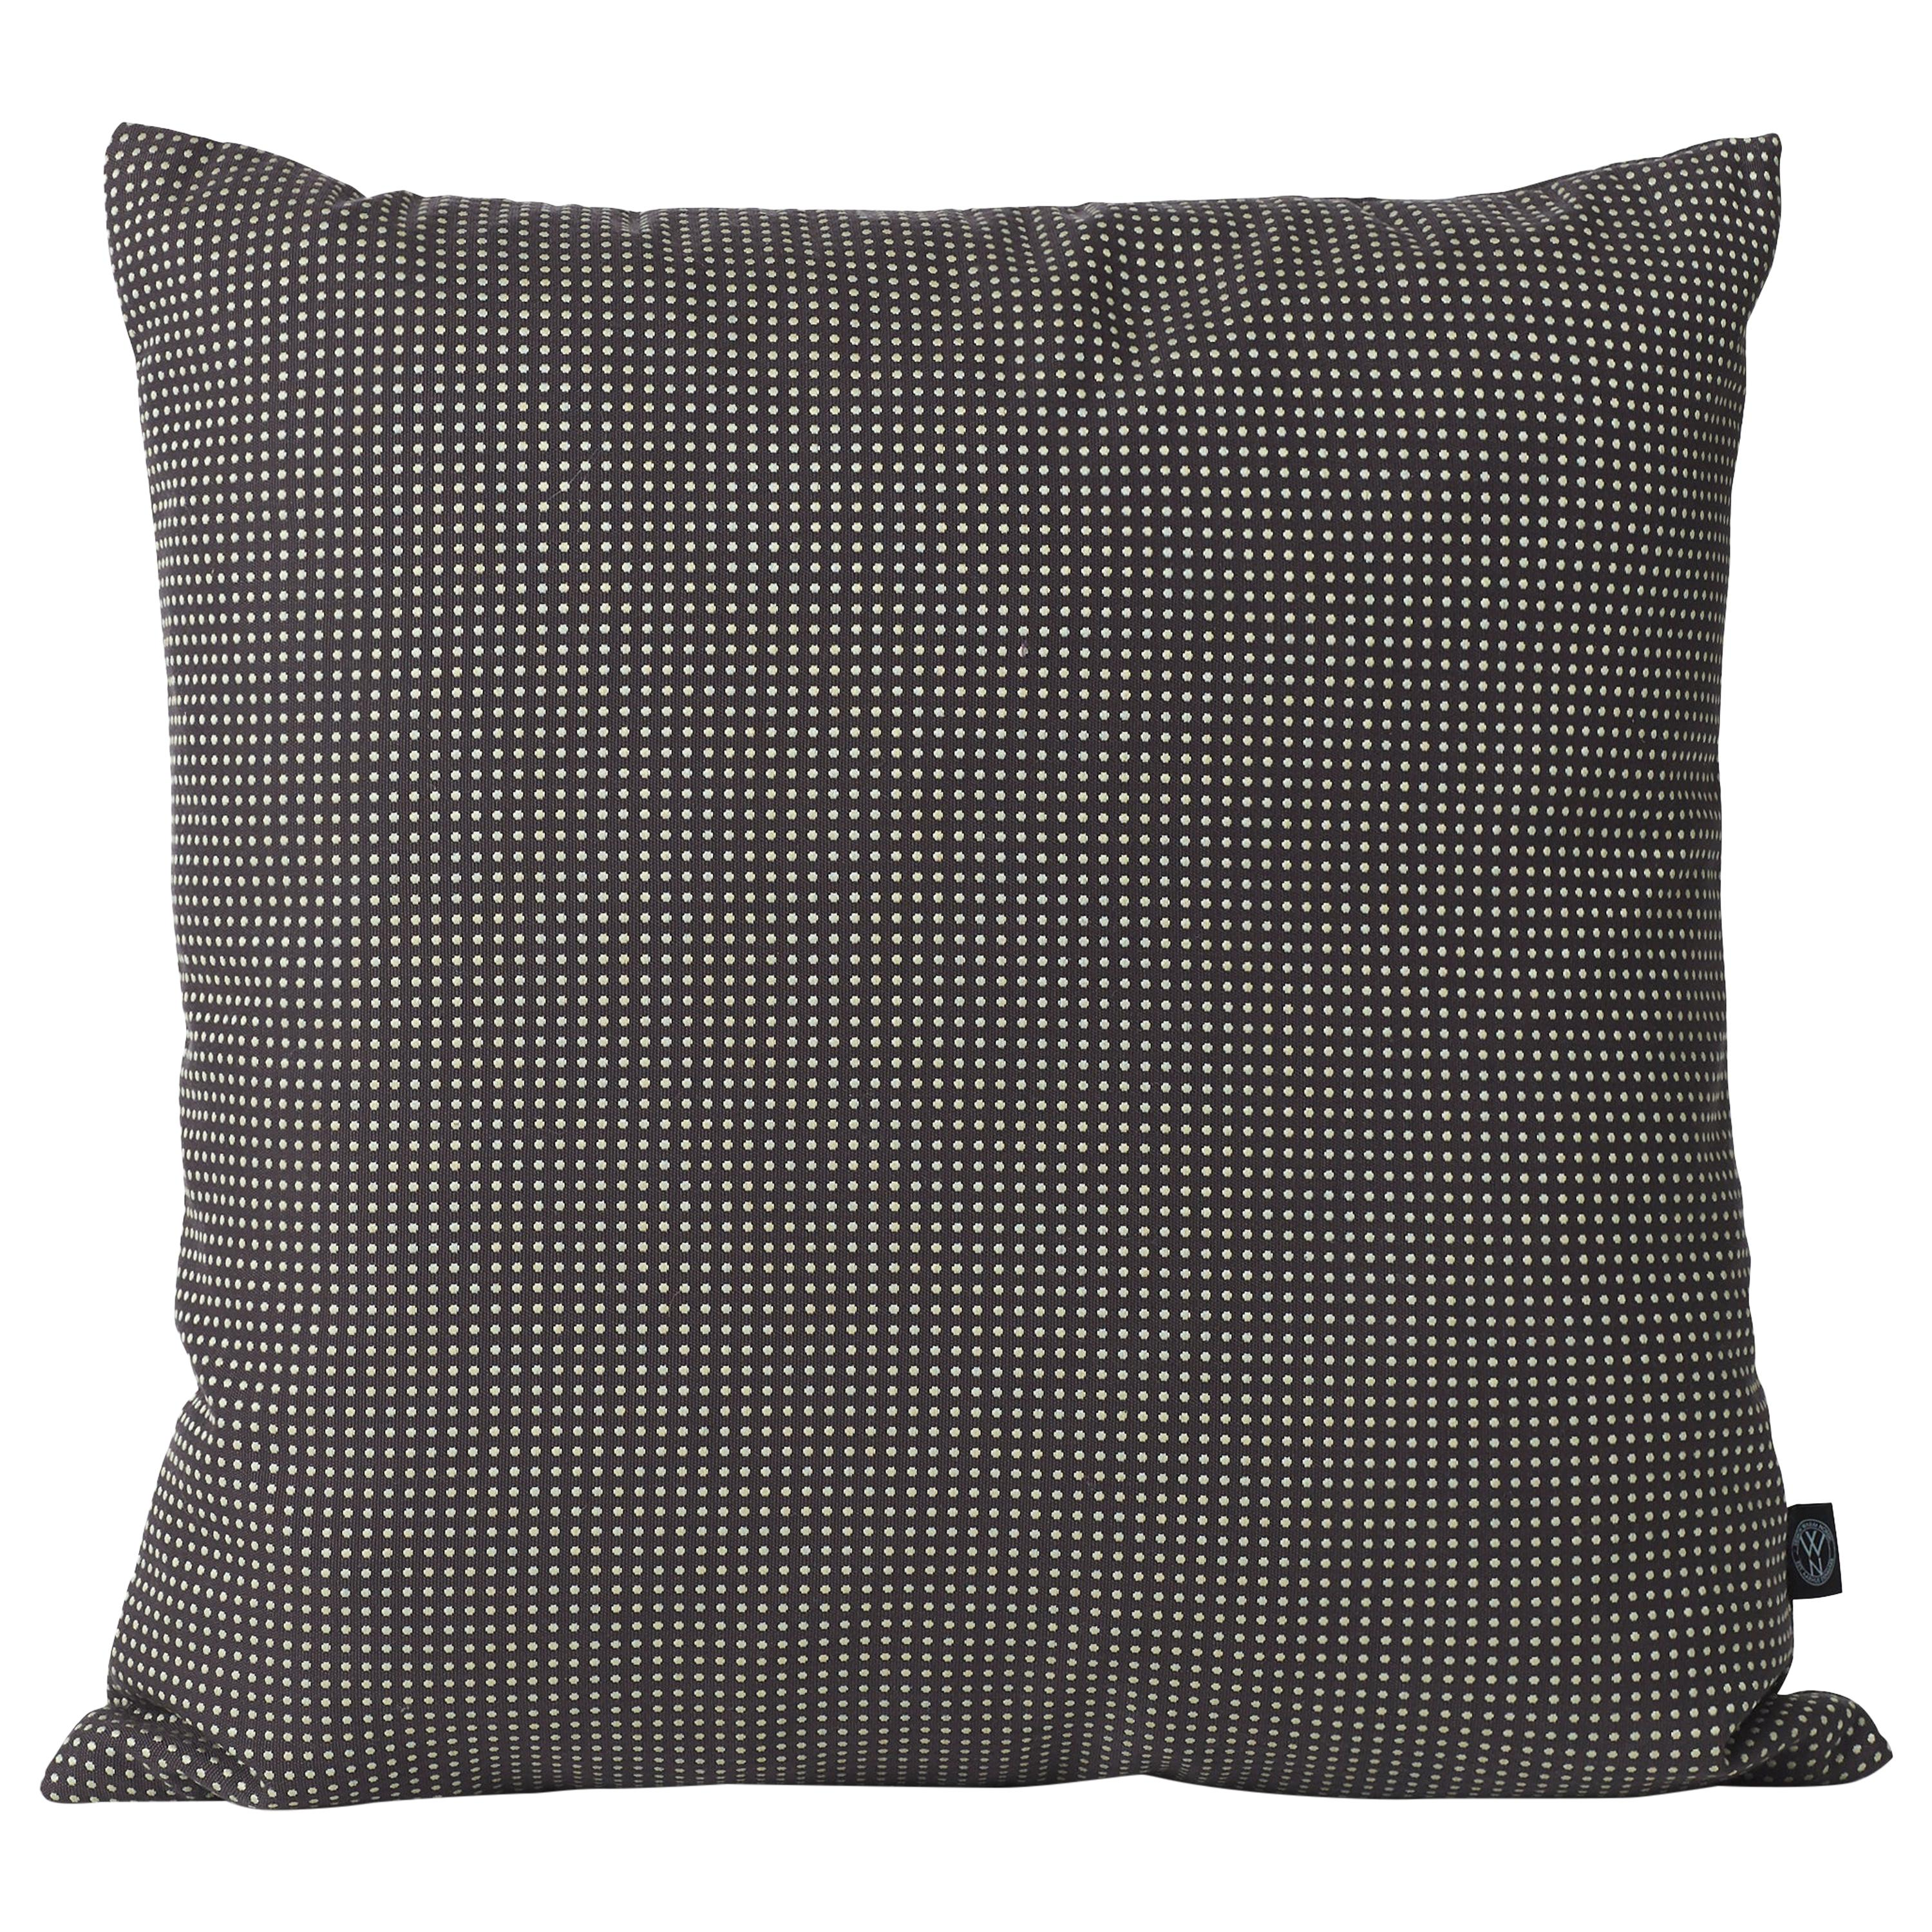 Sprinkle Cushion, by Warm Nordic